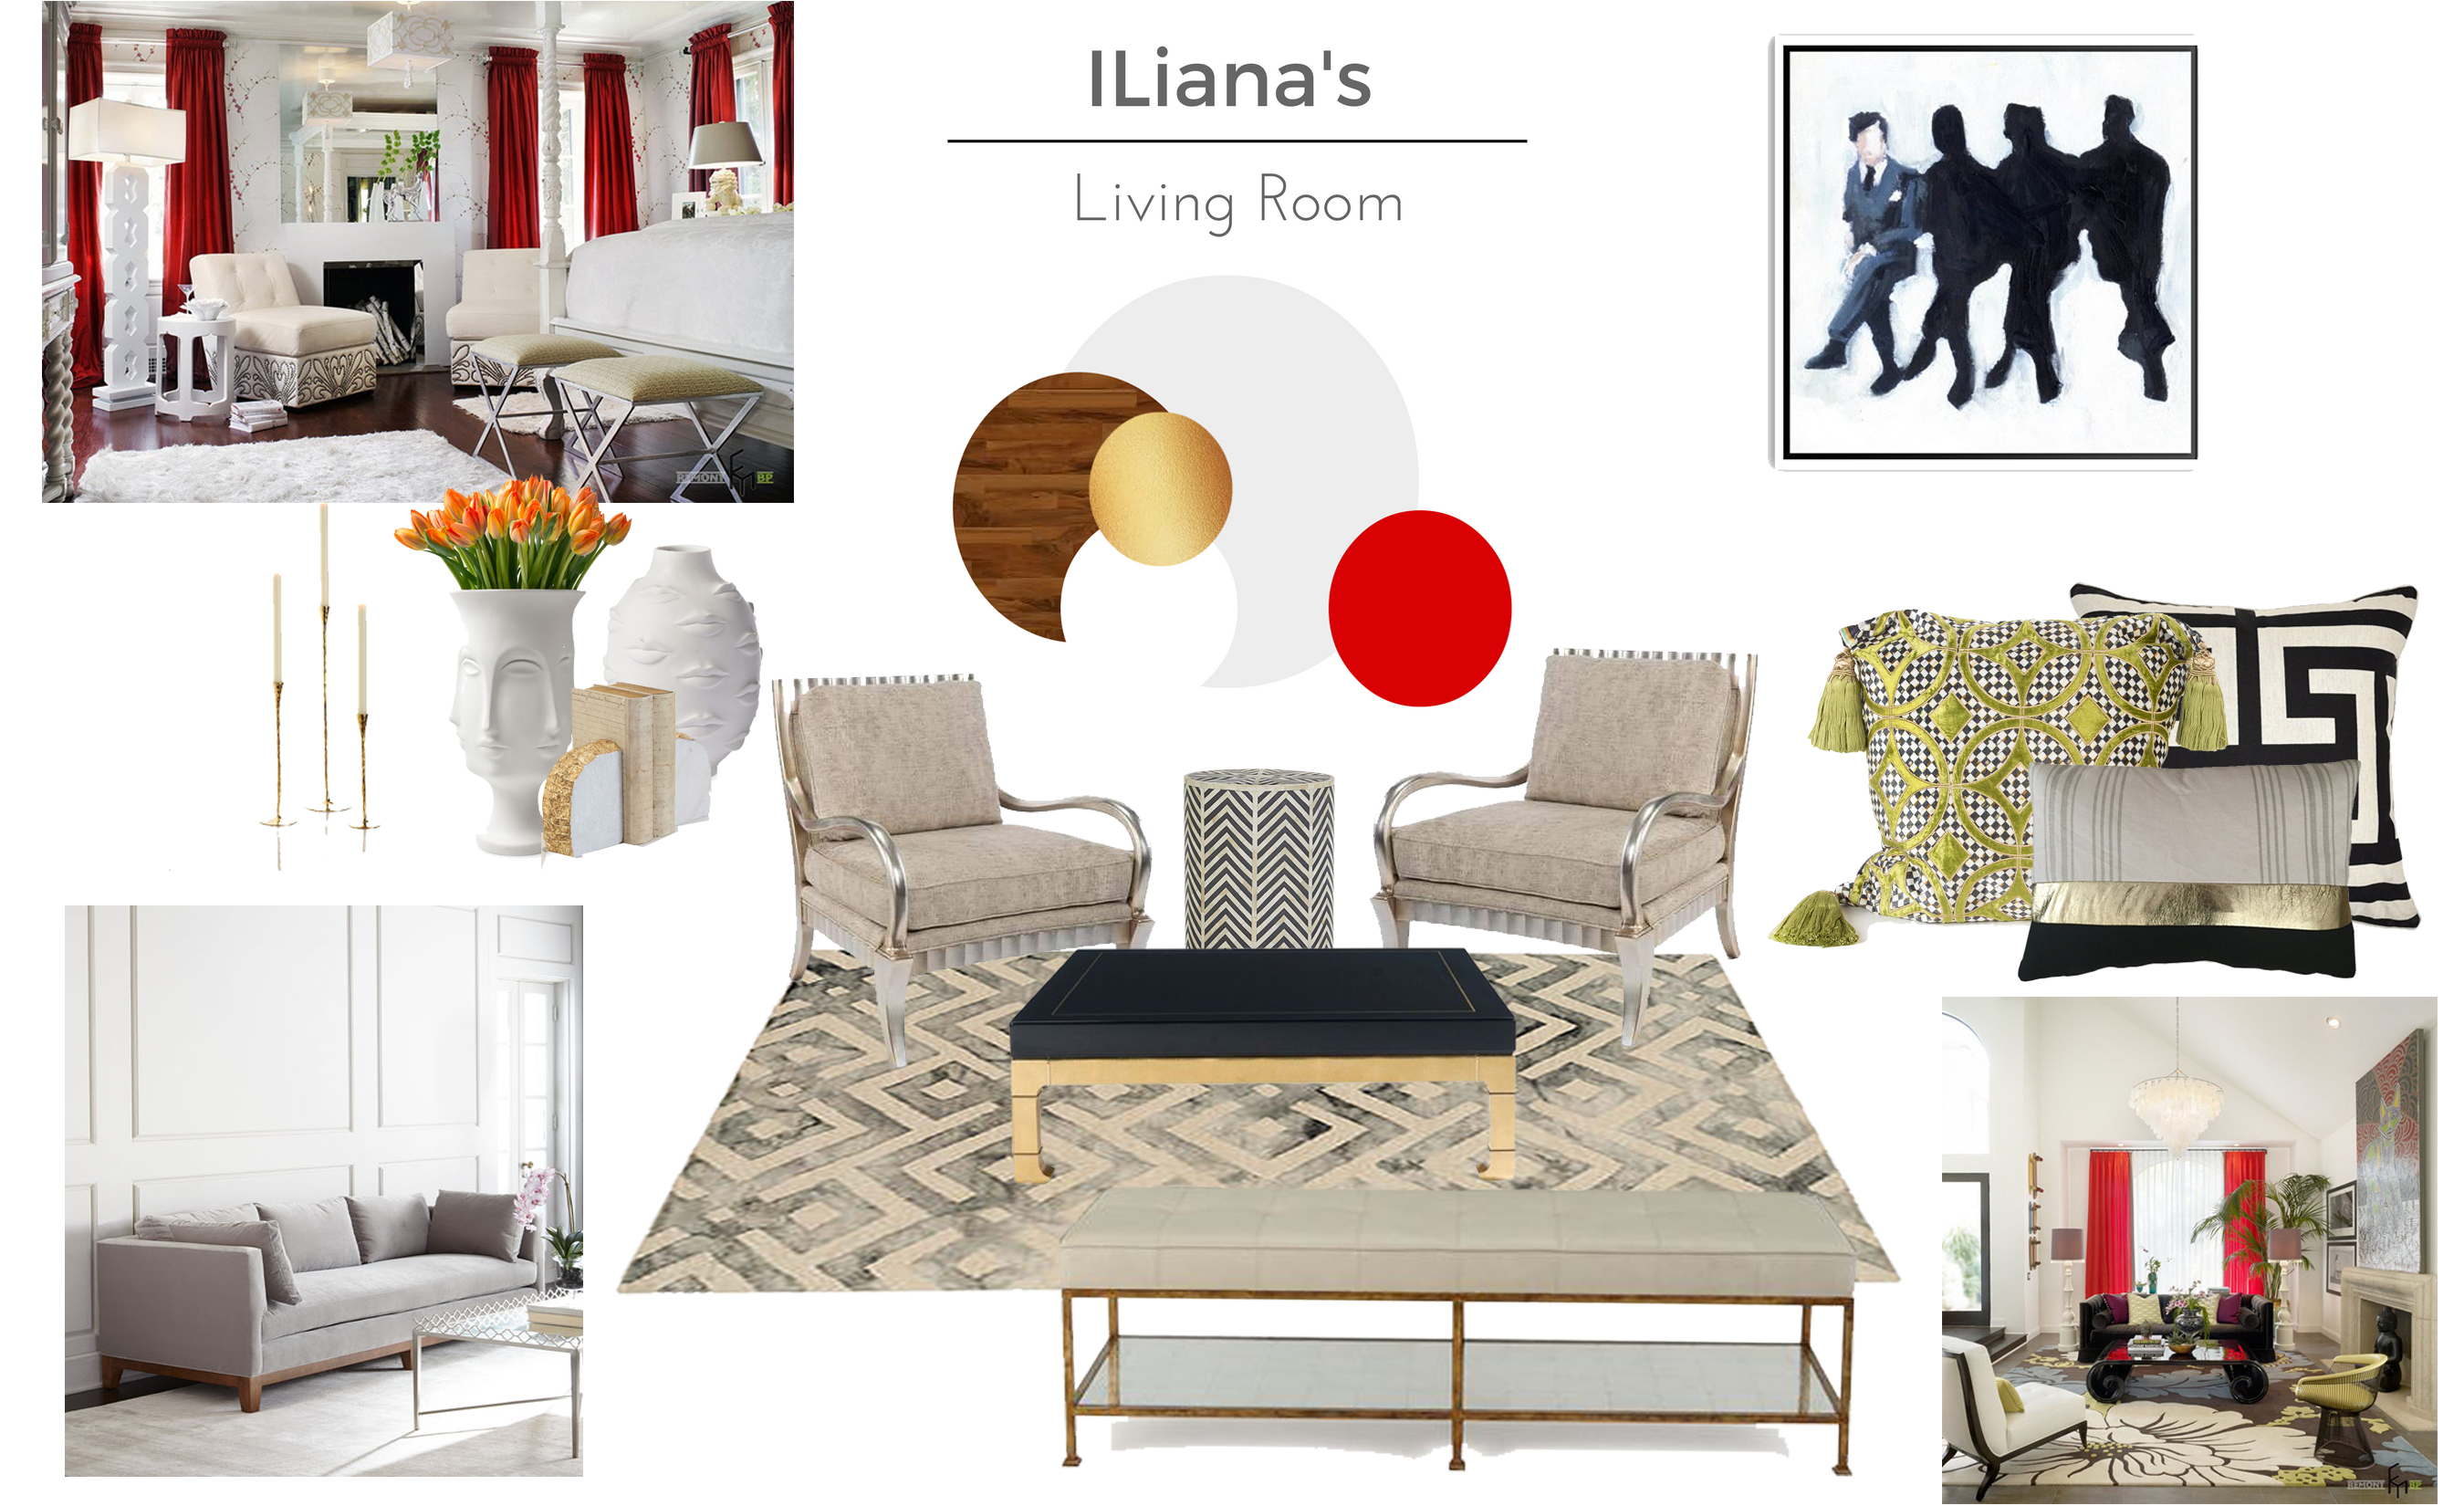 Introducing A Mood Board With High Style And Amazing Drama That